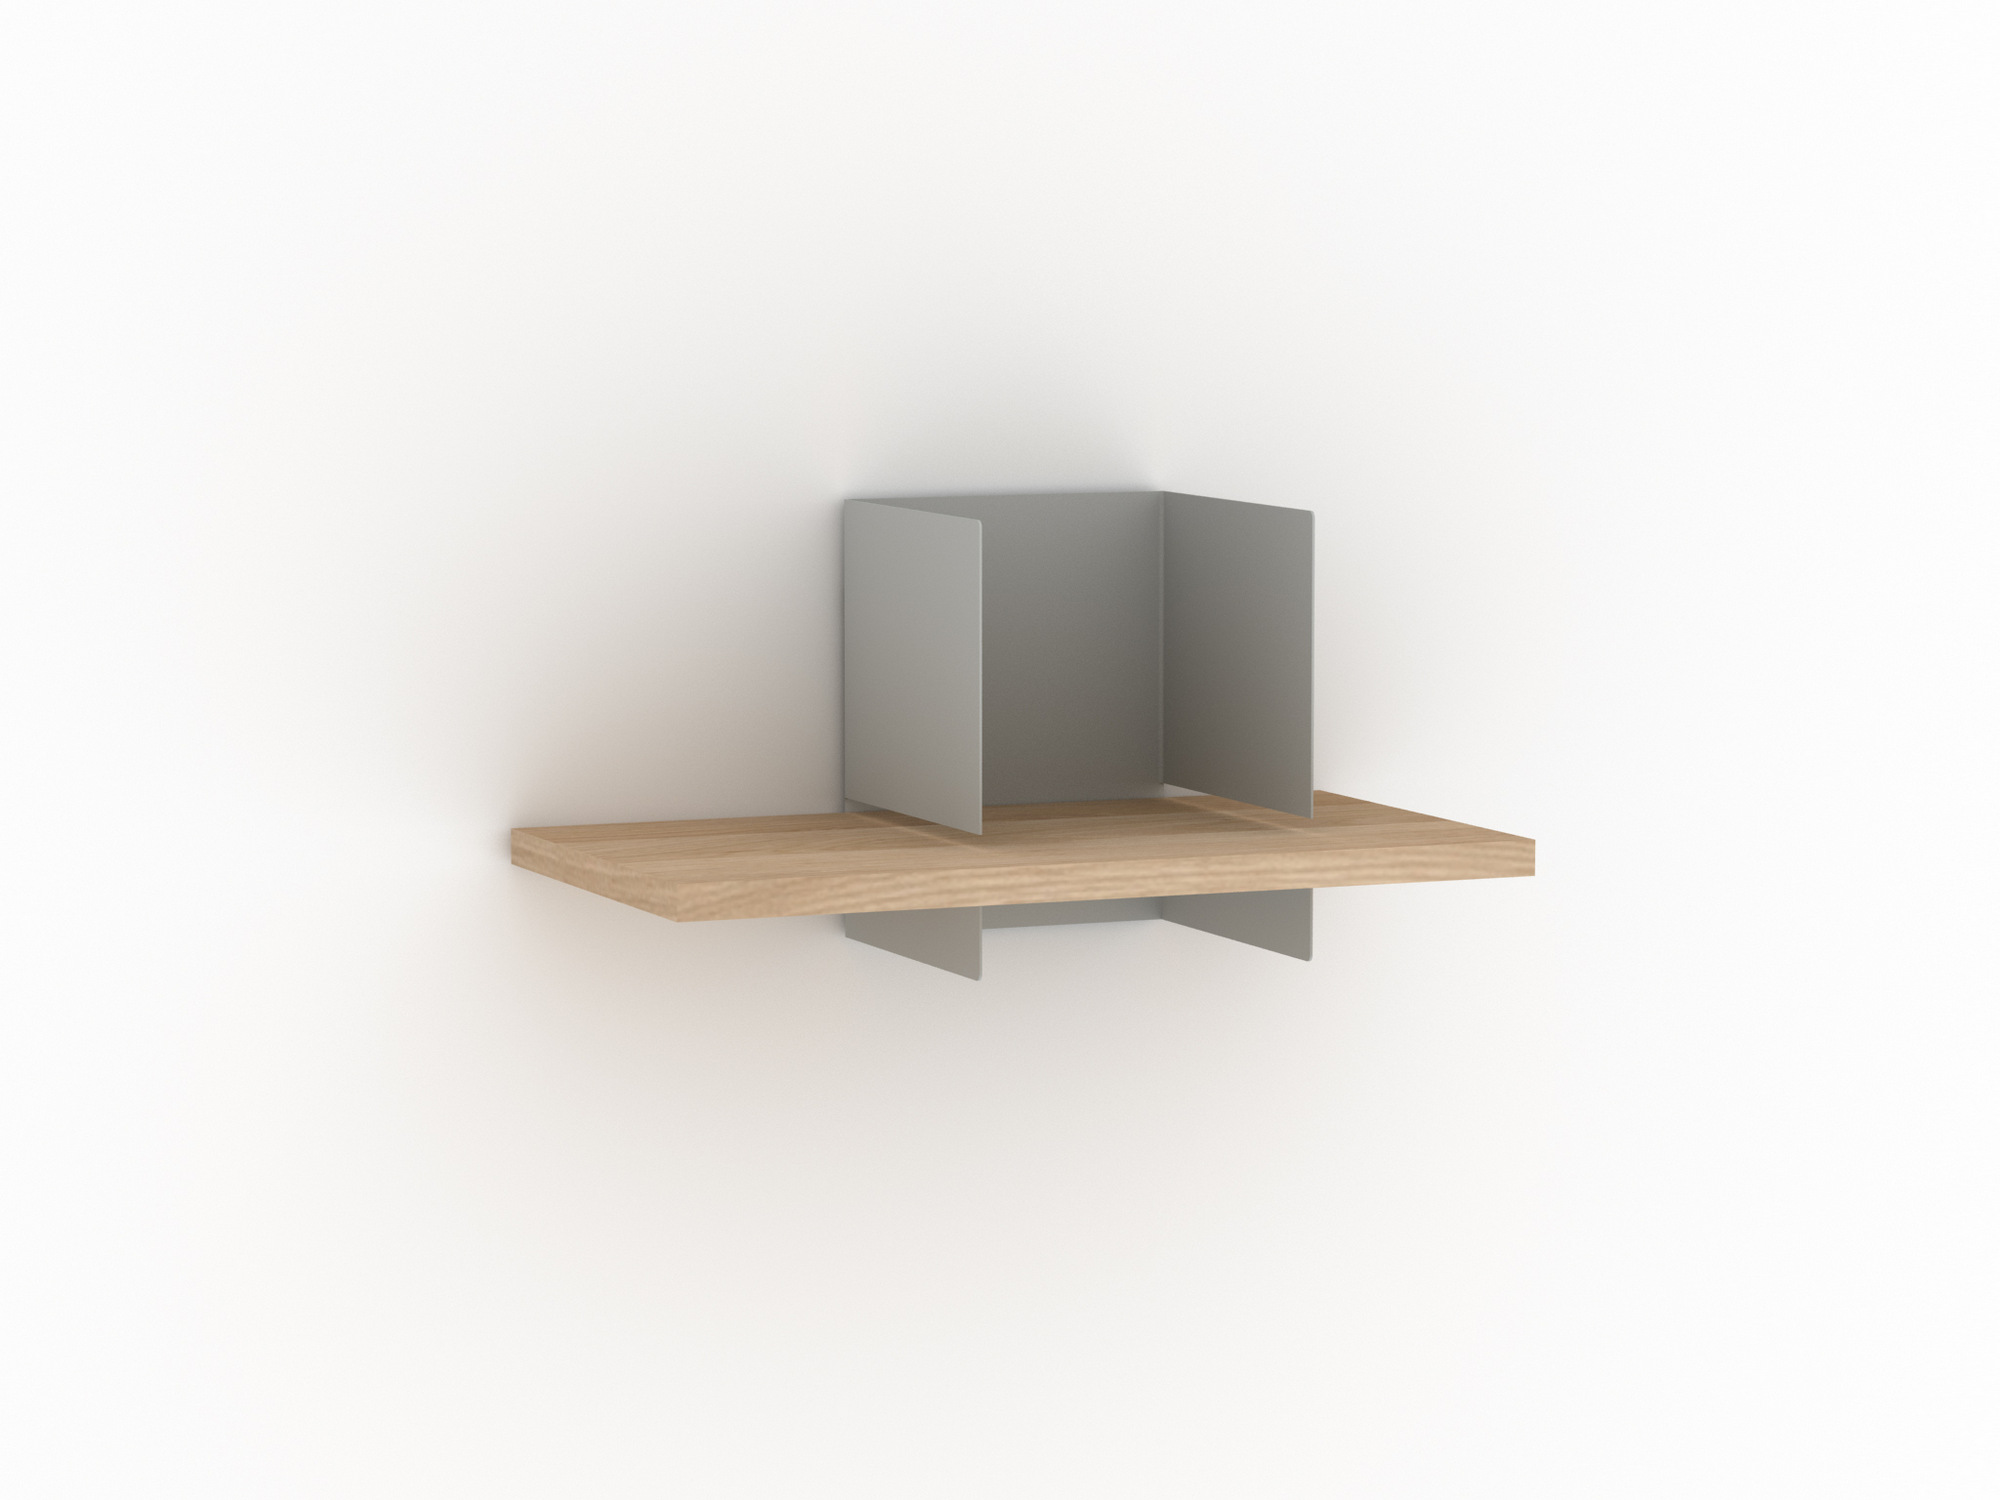 Oak and metal wall shelf CLIP WALL SHELF SMALL By Universo Positivo design  Alain Van Havre. Oak and metal wall shelf CLIP WALL SHELF SMALL By Universo